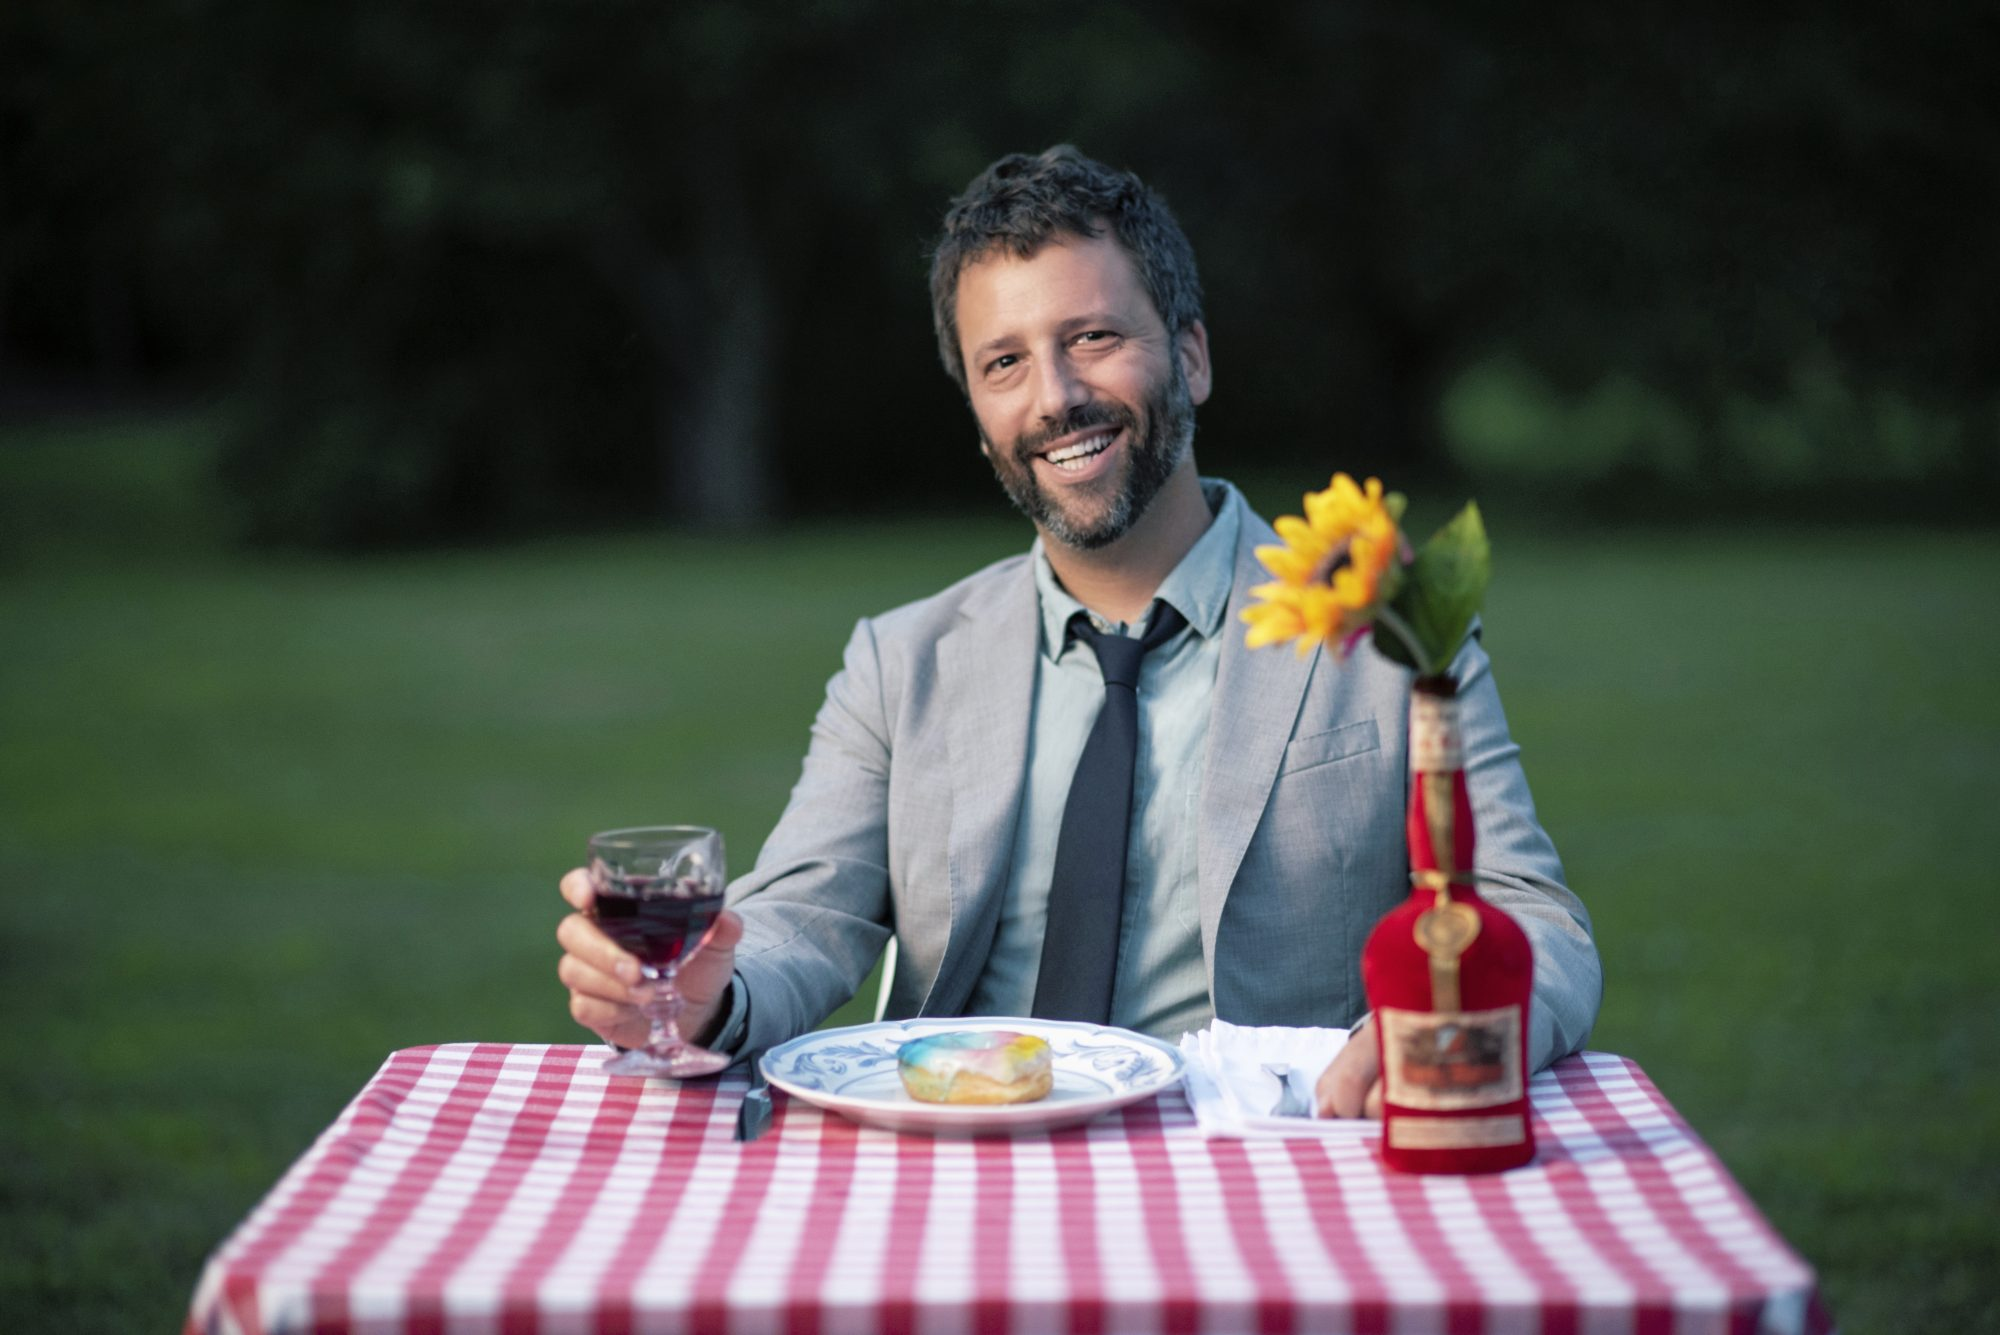 Dan Pashman sitting at a table in a field holding a glass of wine